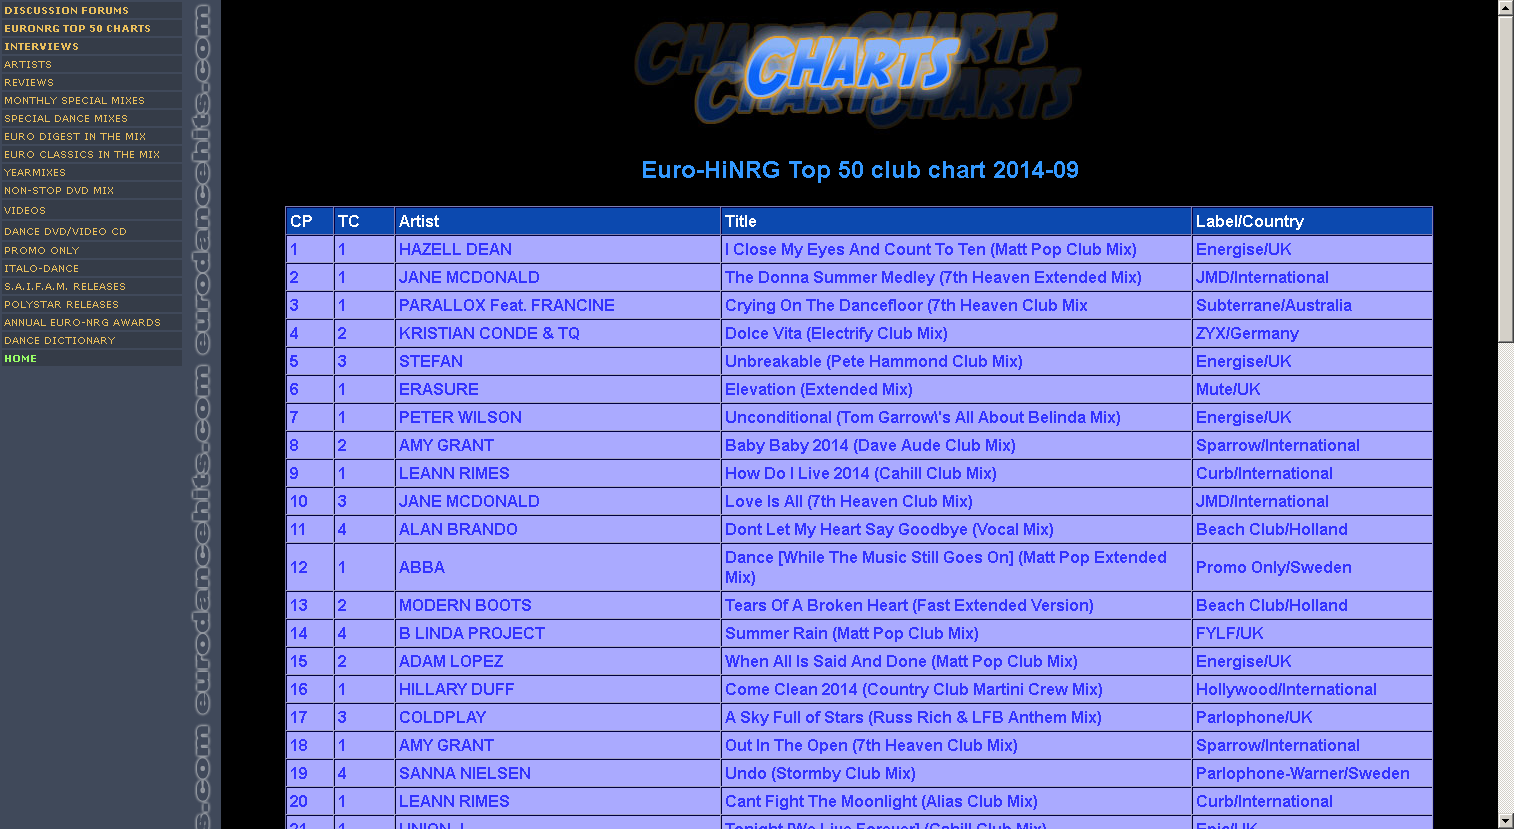 Parralox - Crying on the Dancefloor feat Francine is #3 on the Euro HiNRG Charts